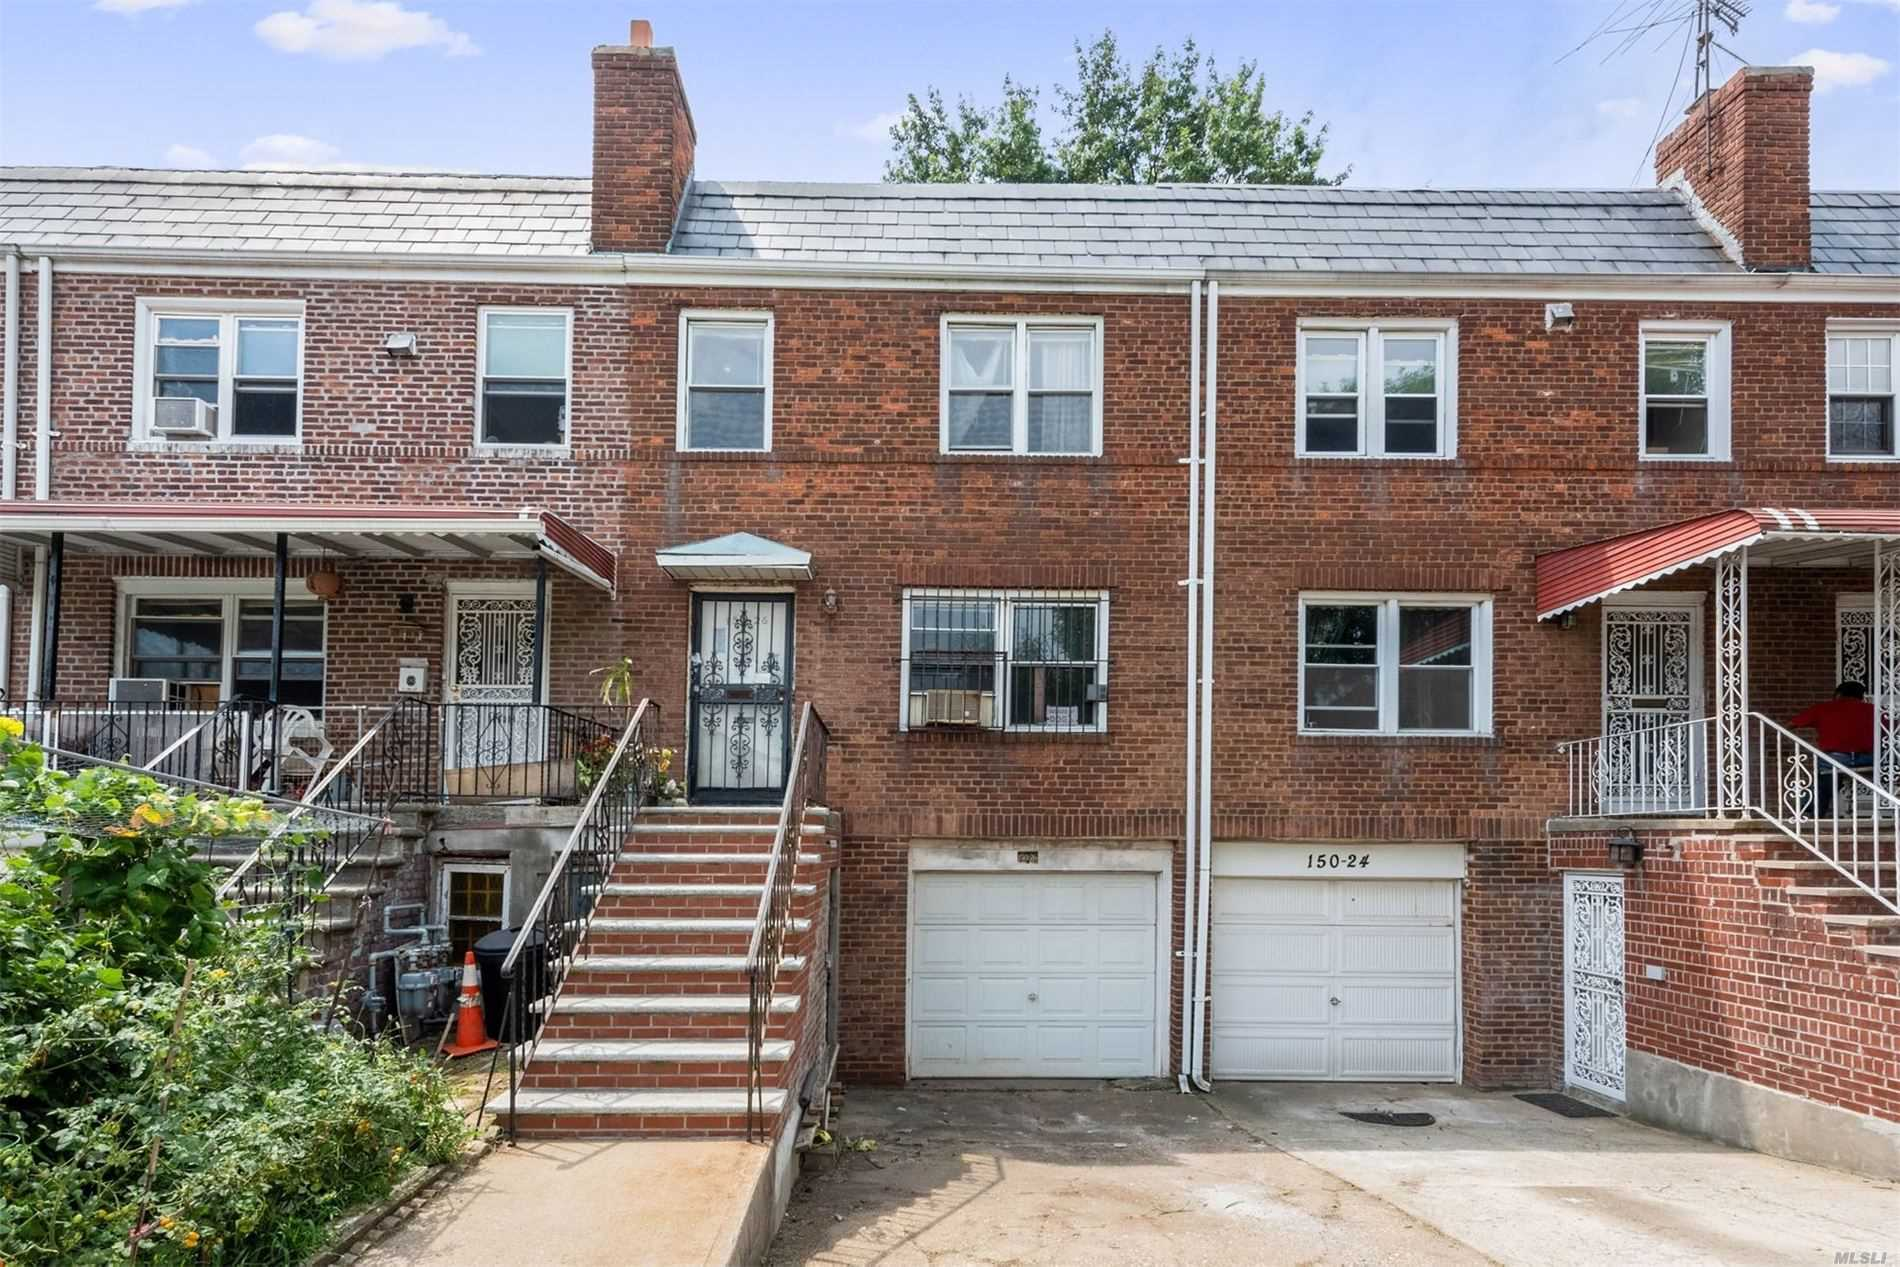 If you're looking for a multi-family in one of the best locations in Flushing, you must consider viewing this 3 Storied 2-Family home features the 1st floor and 2nd floor as a duplex apartment and the 3rd floor has a large Bedroom, Living Room, Eat in Kitchen and a Full Bathroom. Comes with an attached car garage and a yard that you can enjoy with your family! Walk to Kissena Blvd. Yearly property tax is only $3, 209.84.